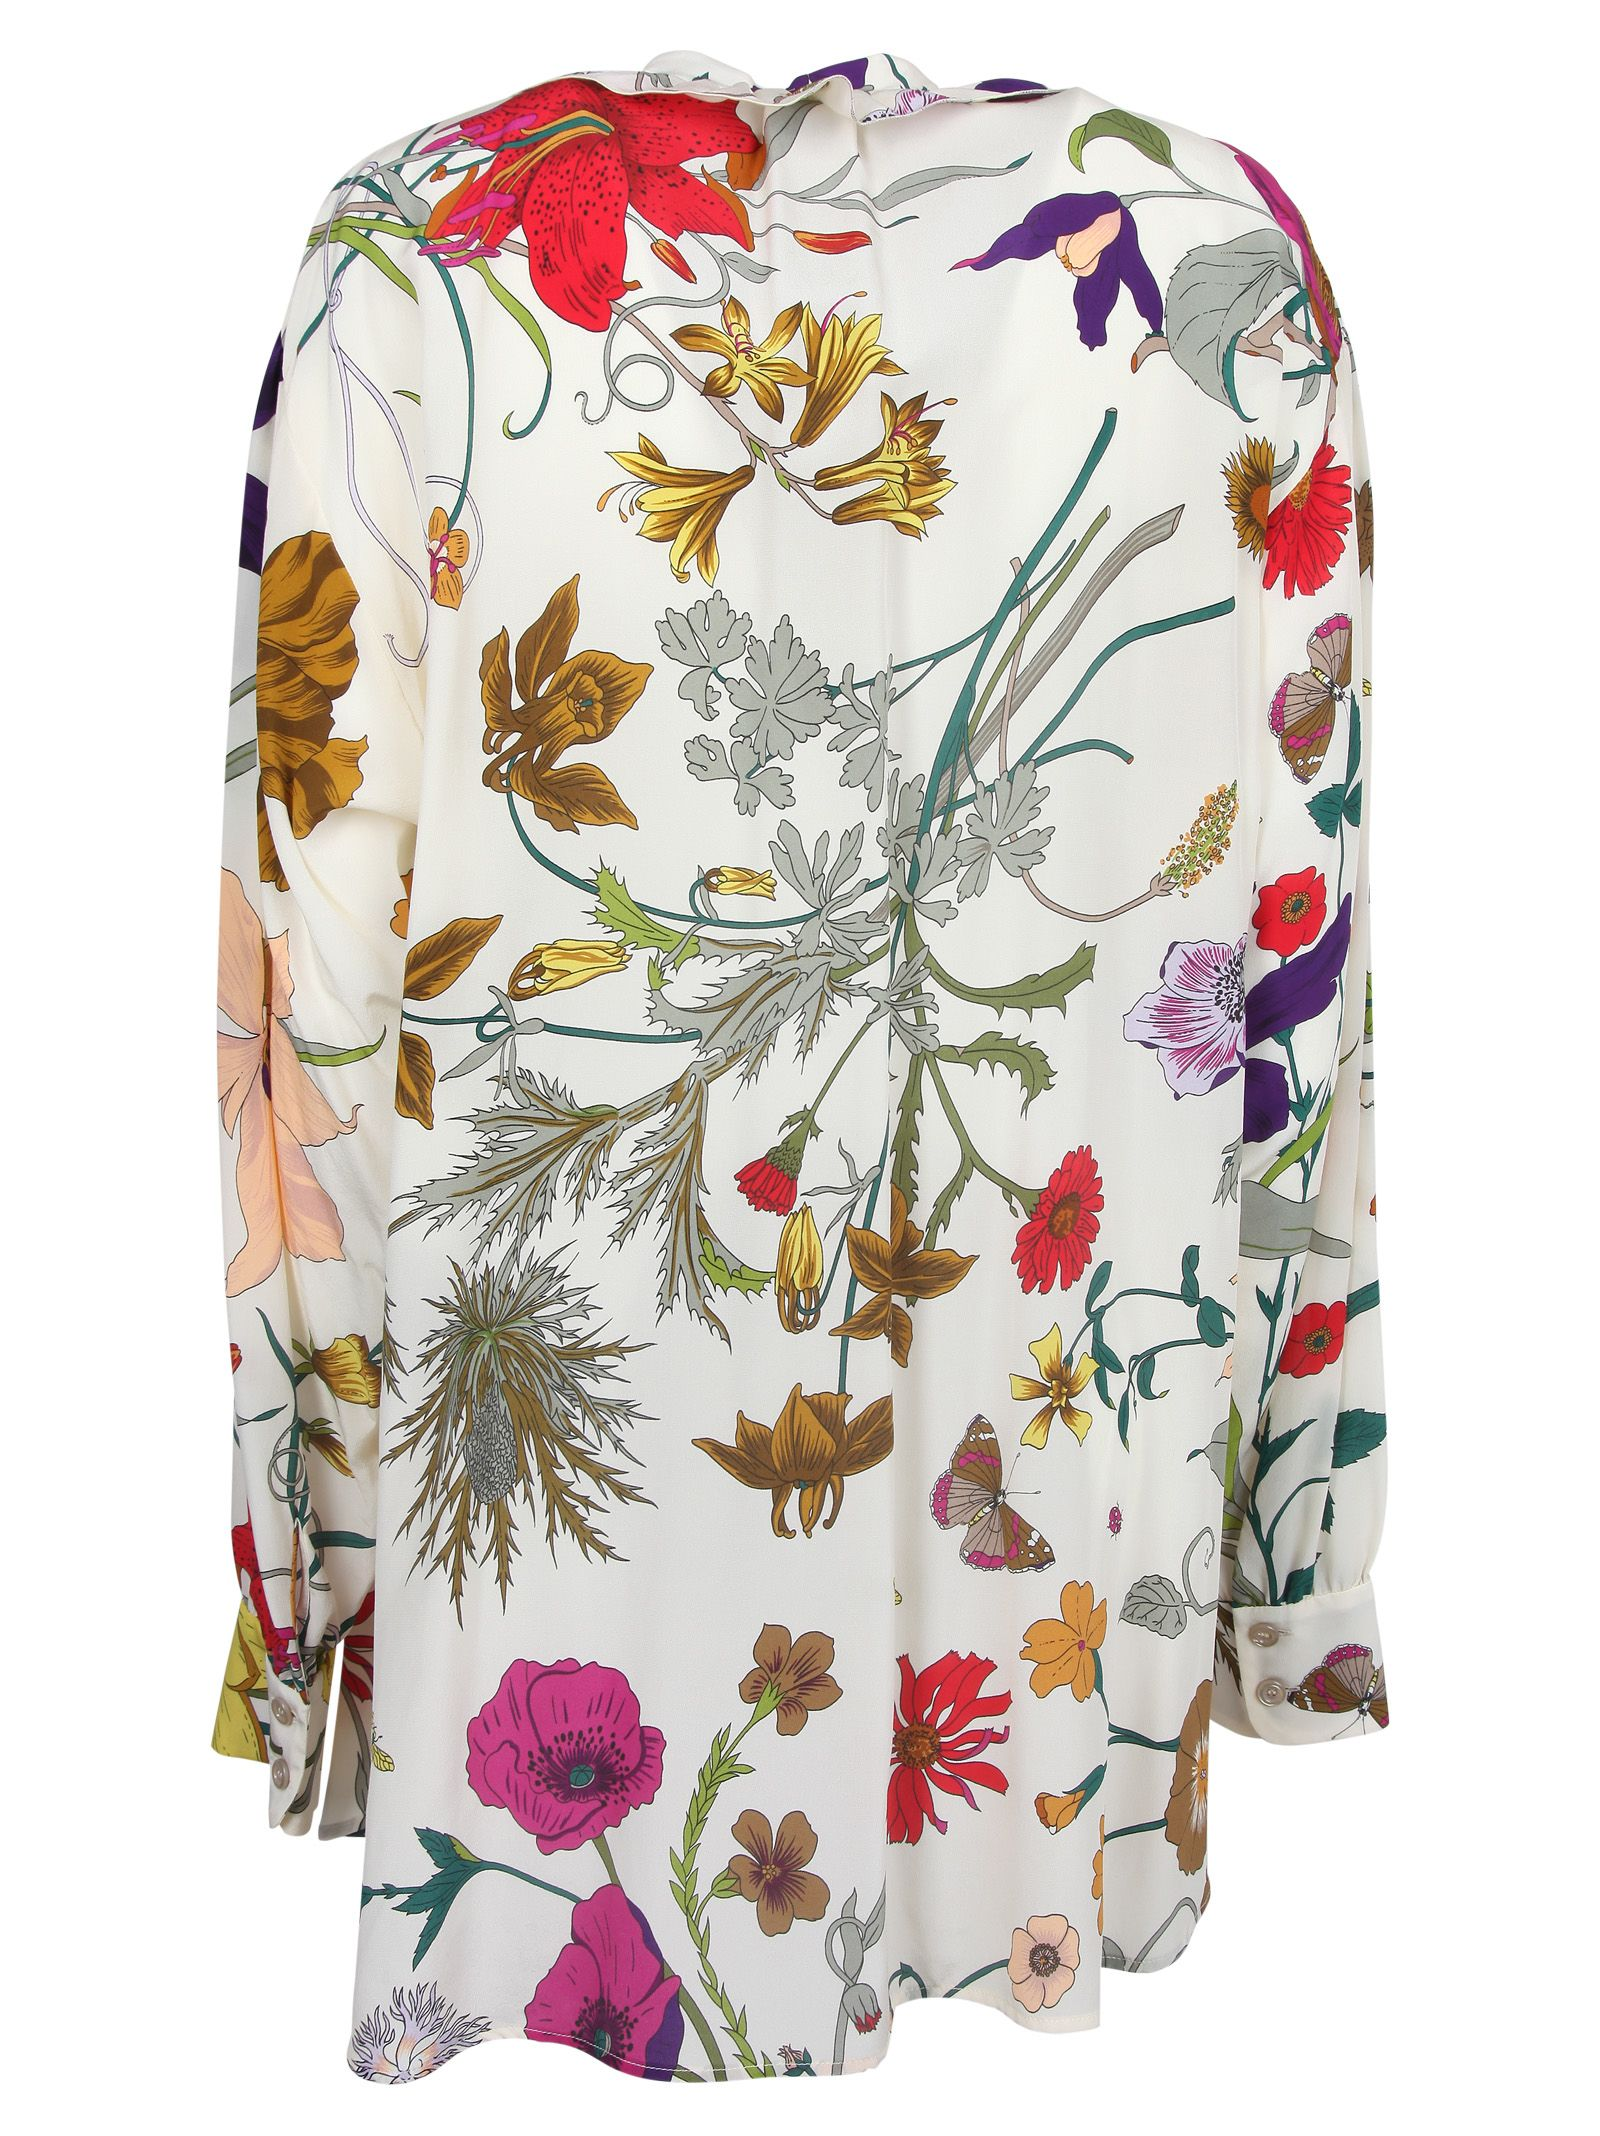 3bb29a57d155 Gucci Floral Blouse - Ivory Printed Gucci Floral Blouse - Ivory Printed